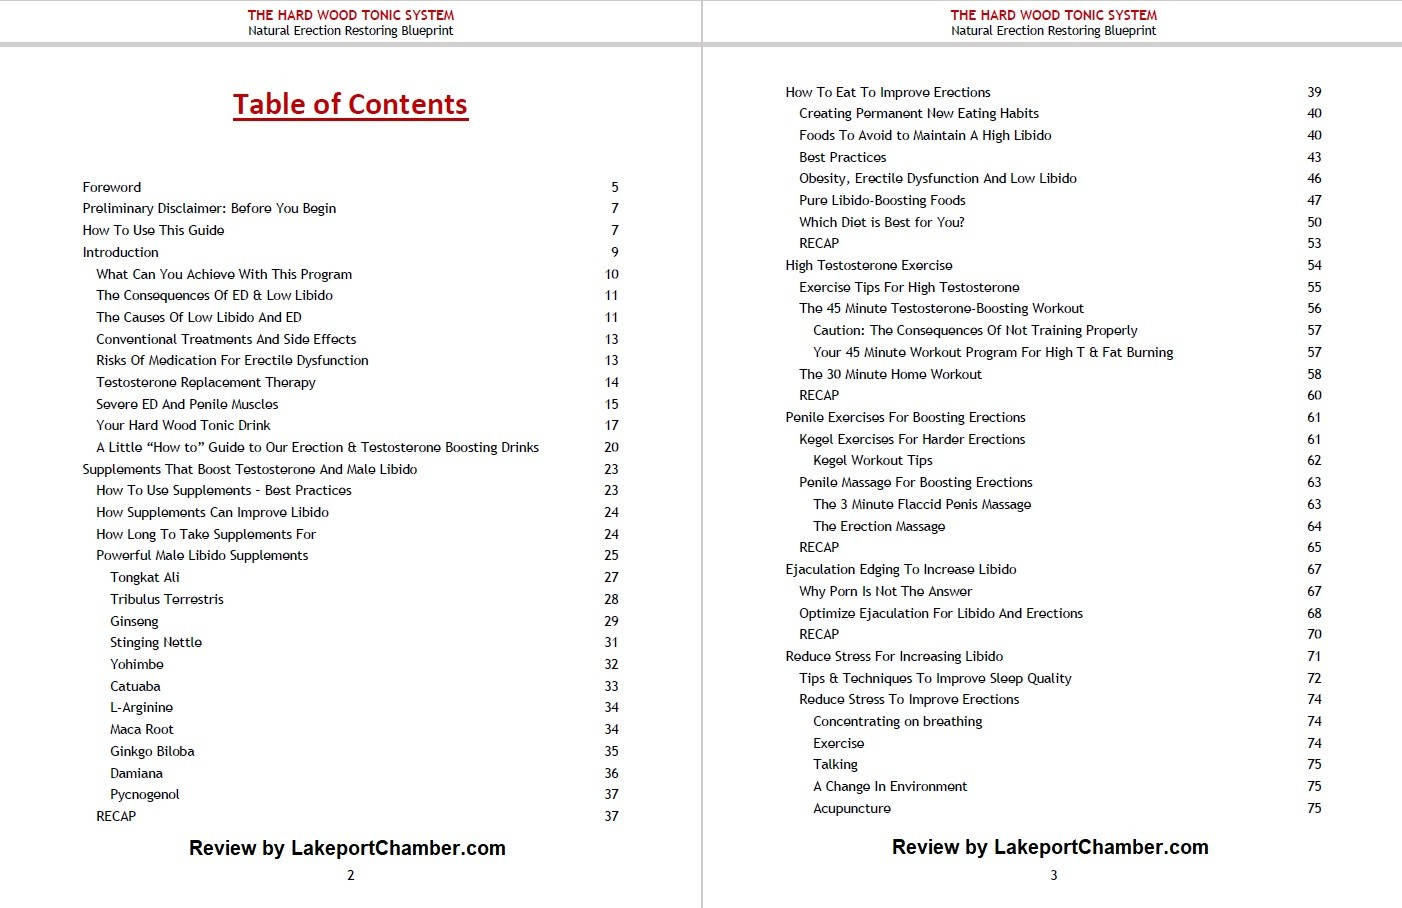 Hard Wood Tonic System Table of Contents